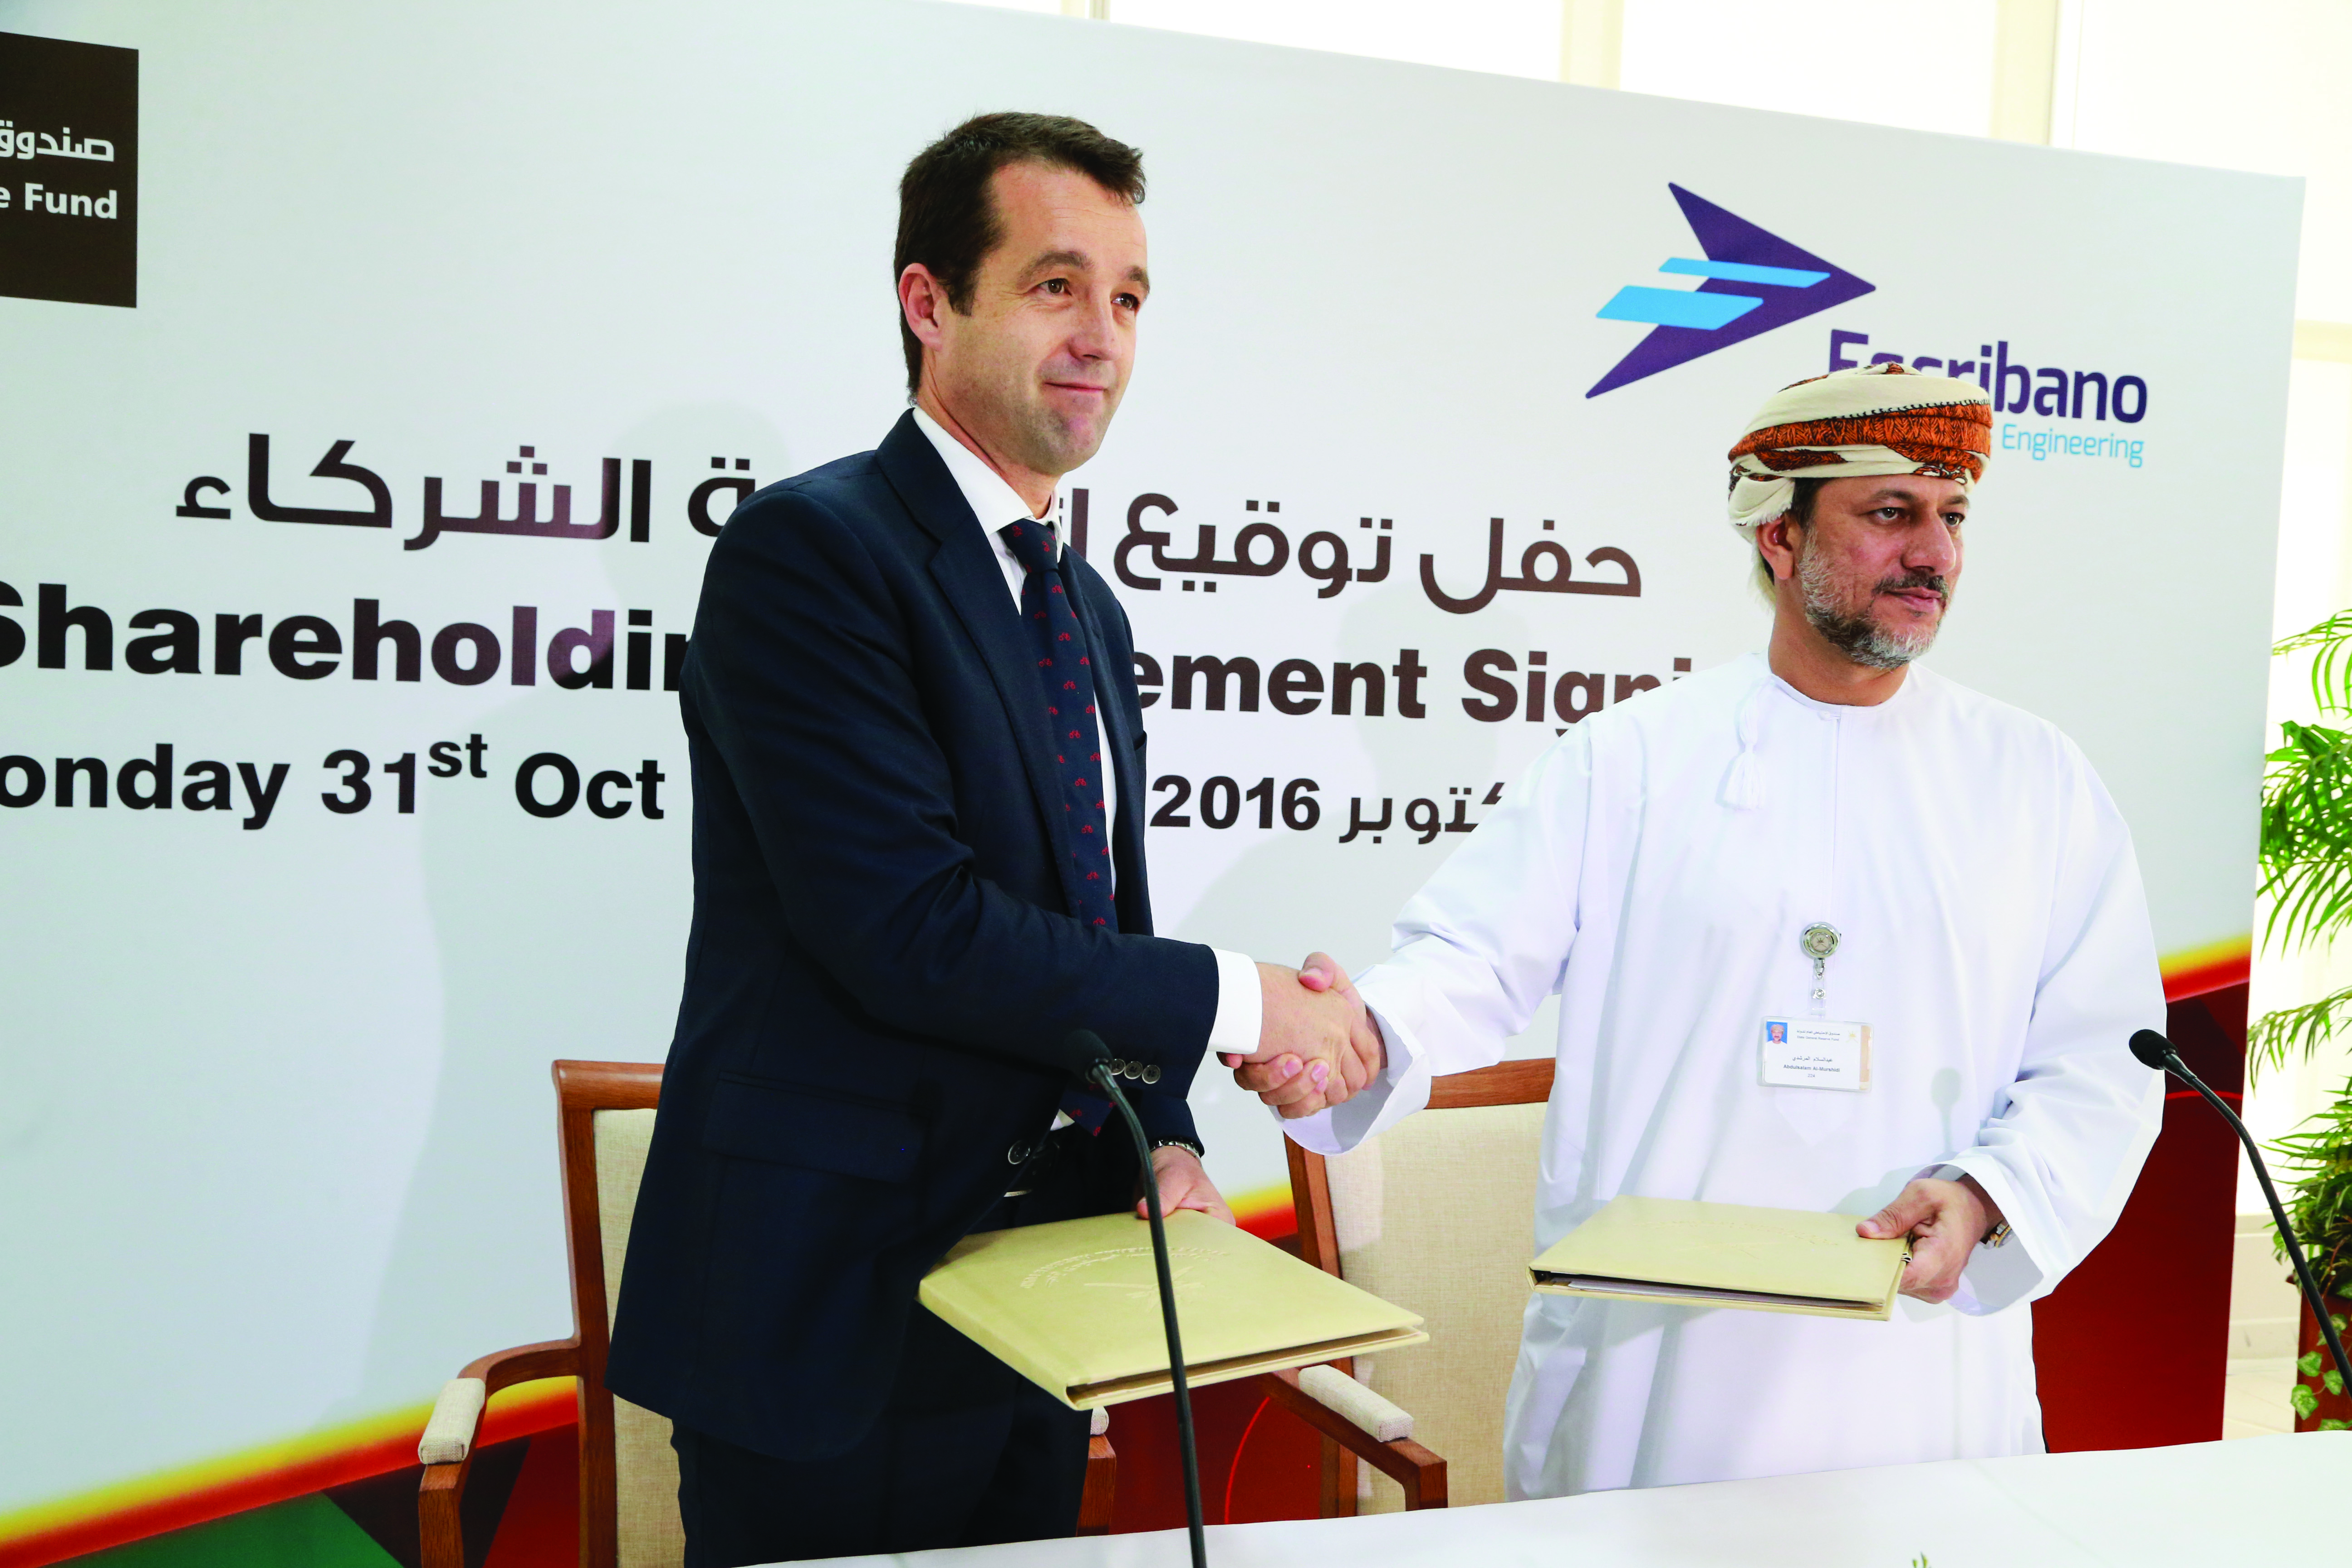 Oman sovereign fund acquires 32% stake in Spanish firm